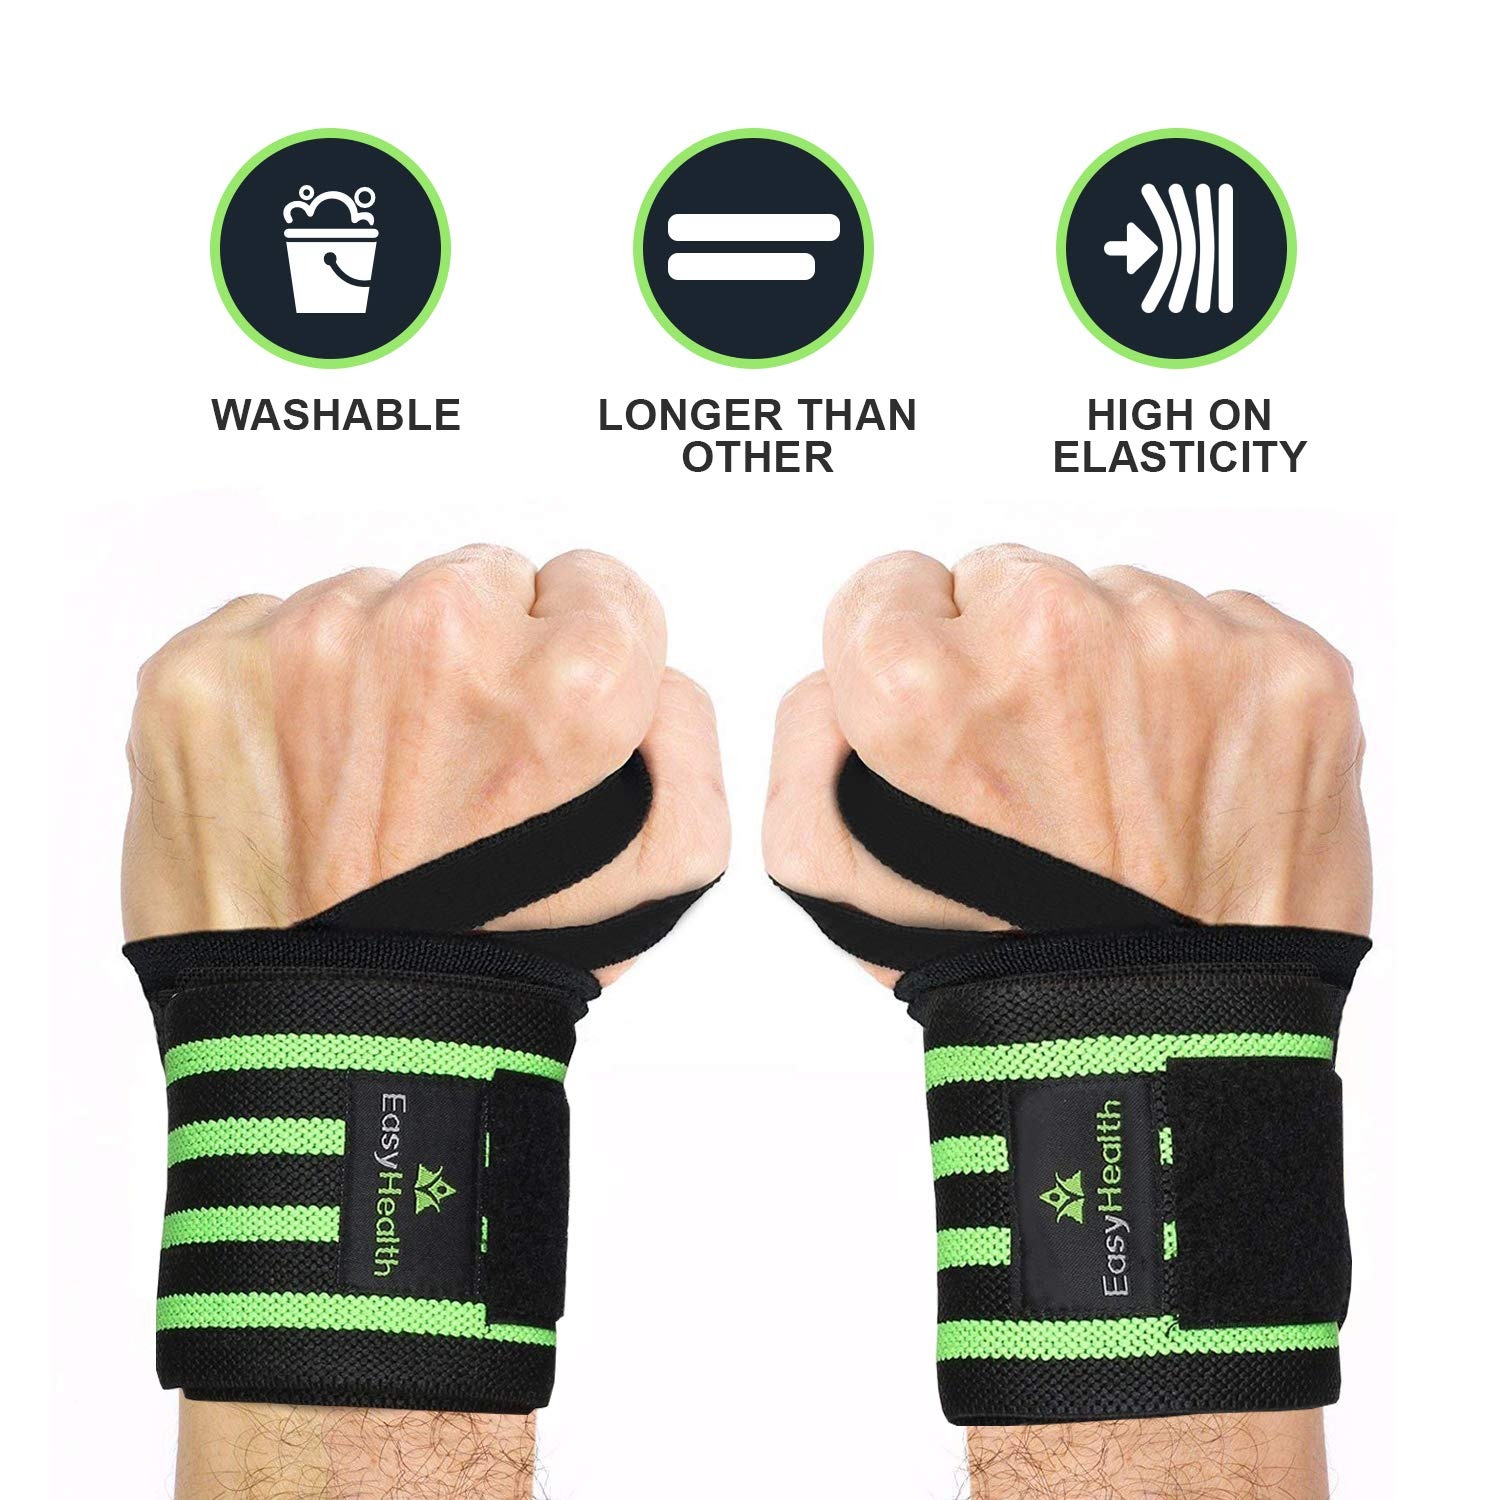 "EasyHealth Wrist Wraps 22"" Professional Grade with Thumb Loops Wrist Support for Men and Women product image"